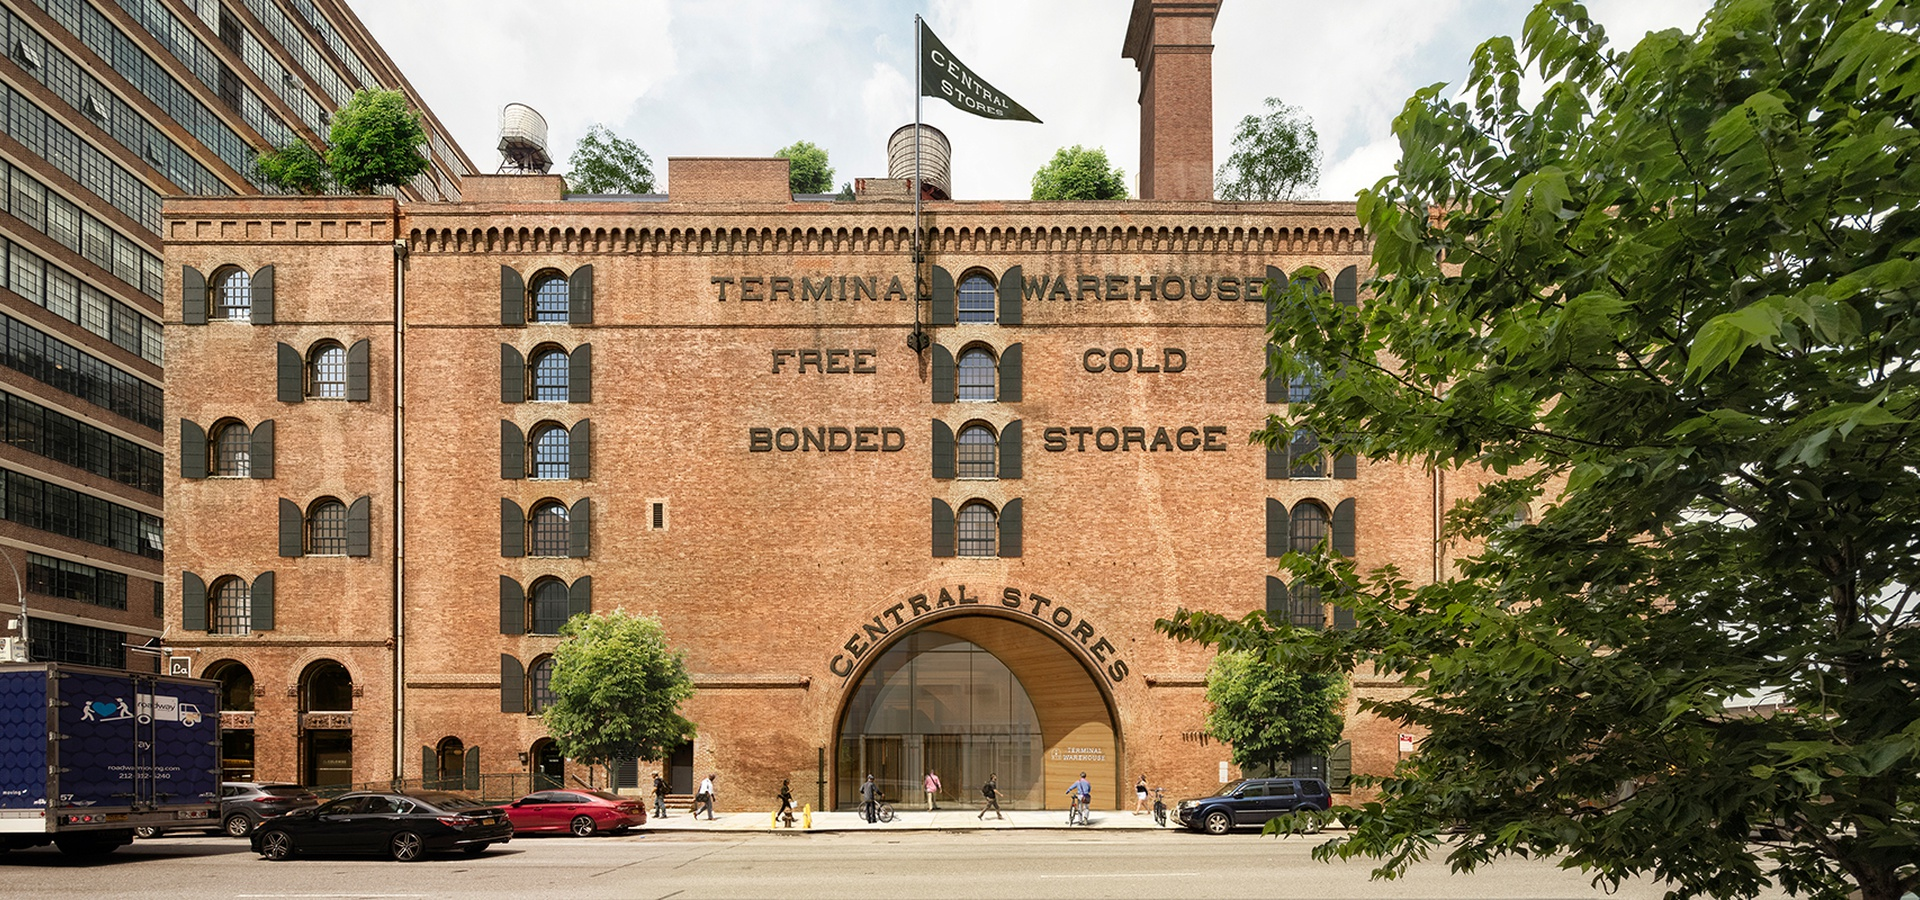 Terminal Warehouse